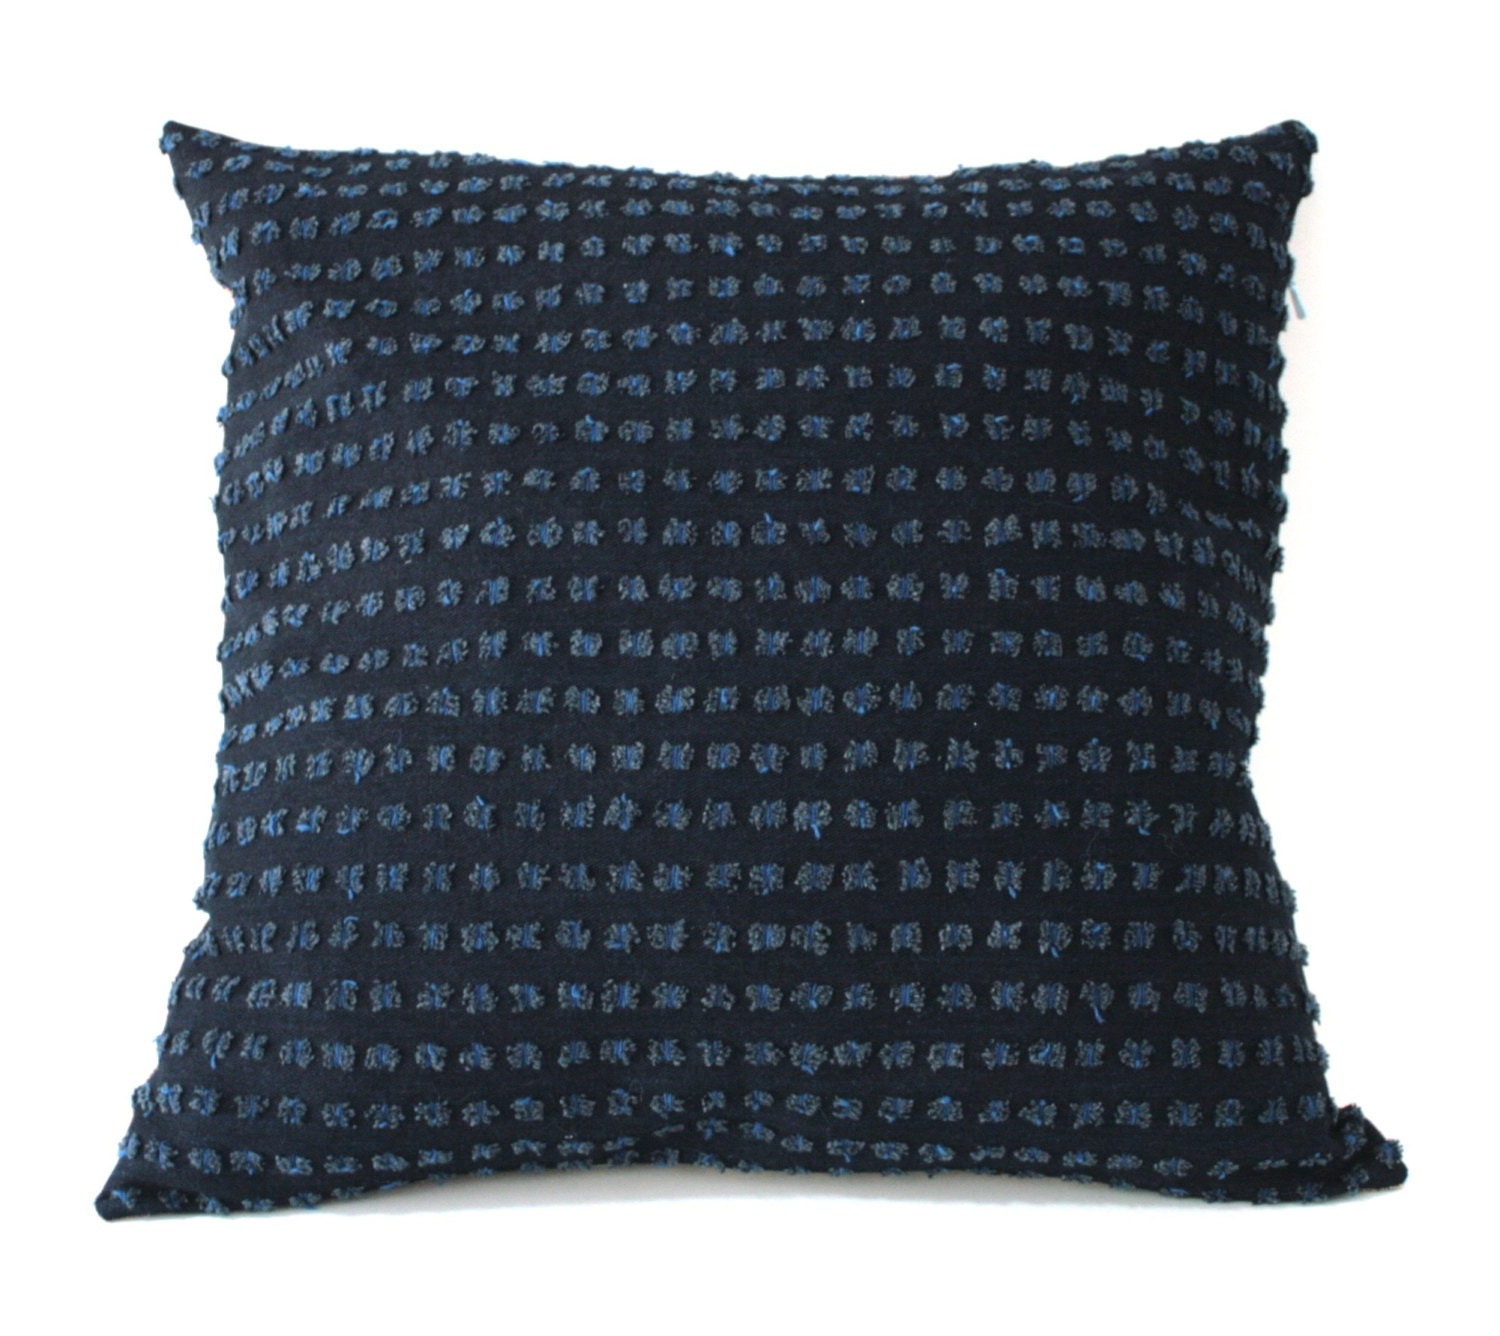 Textured blue pillow cover designer fabric throw pillow blue - Fabric for throw pillows ...